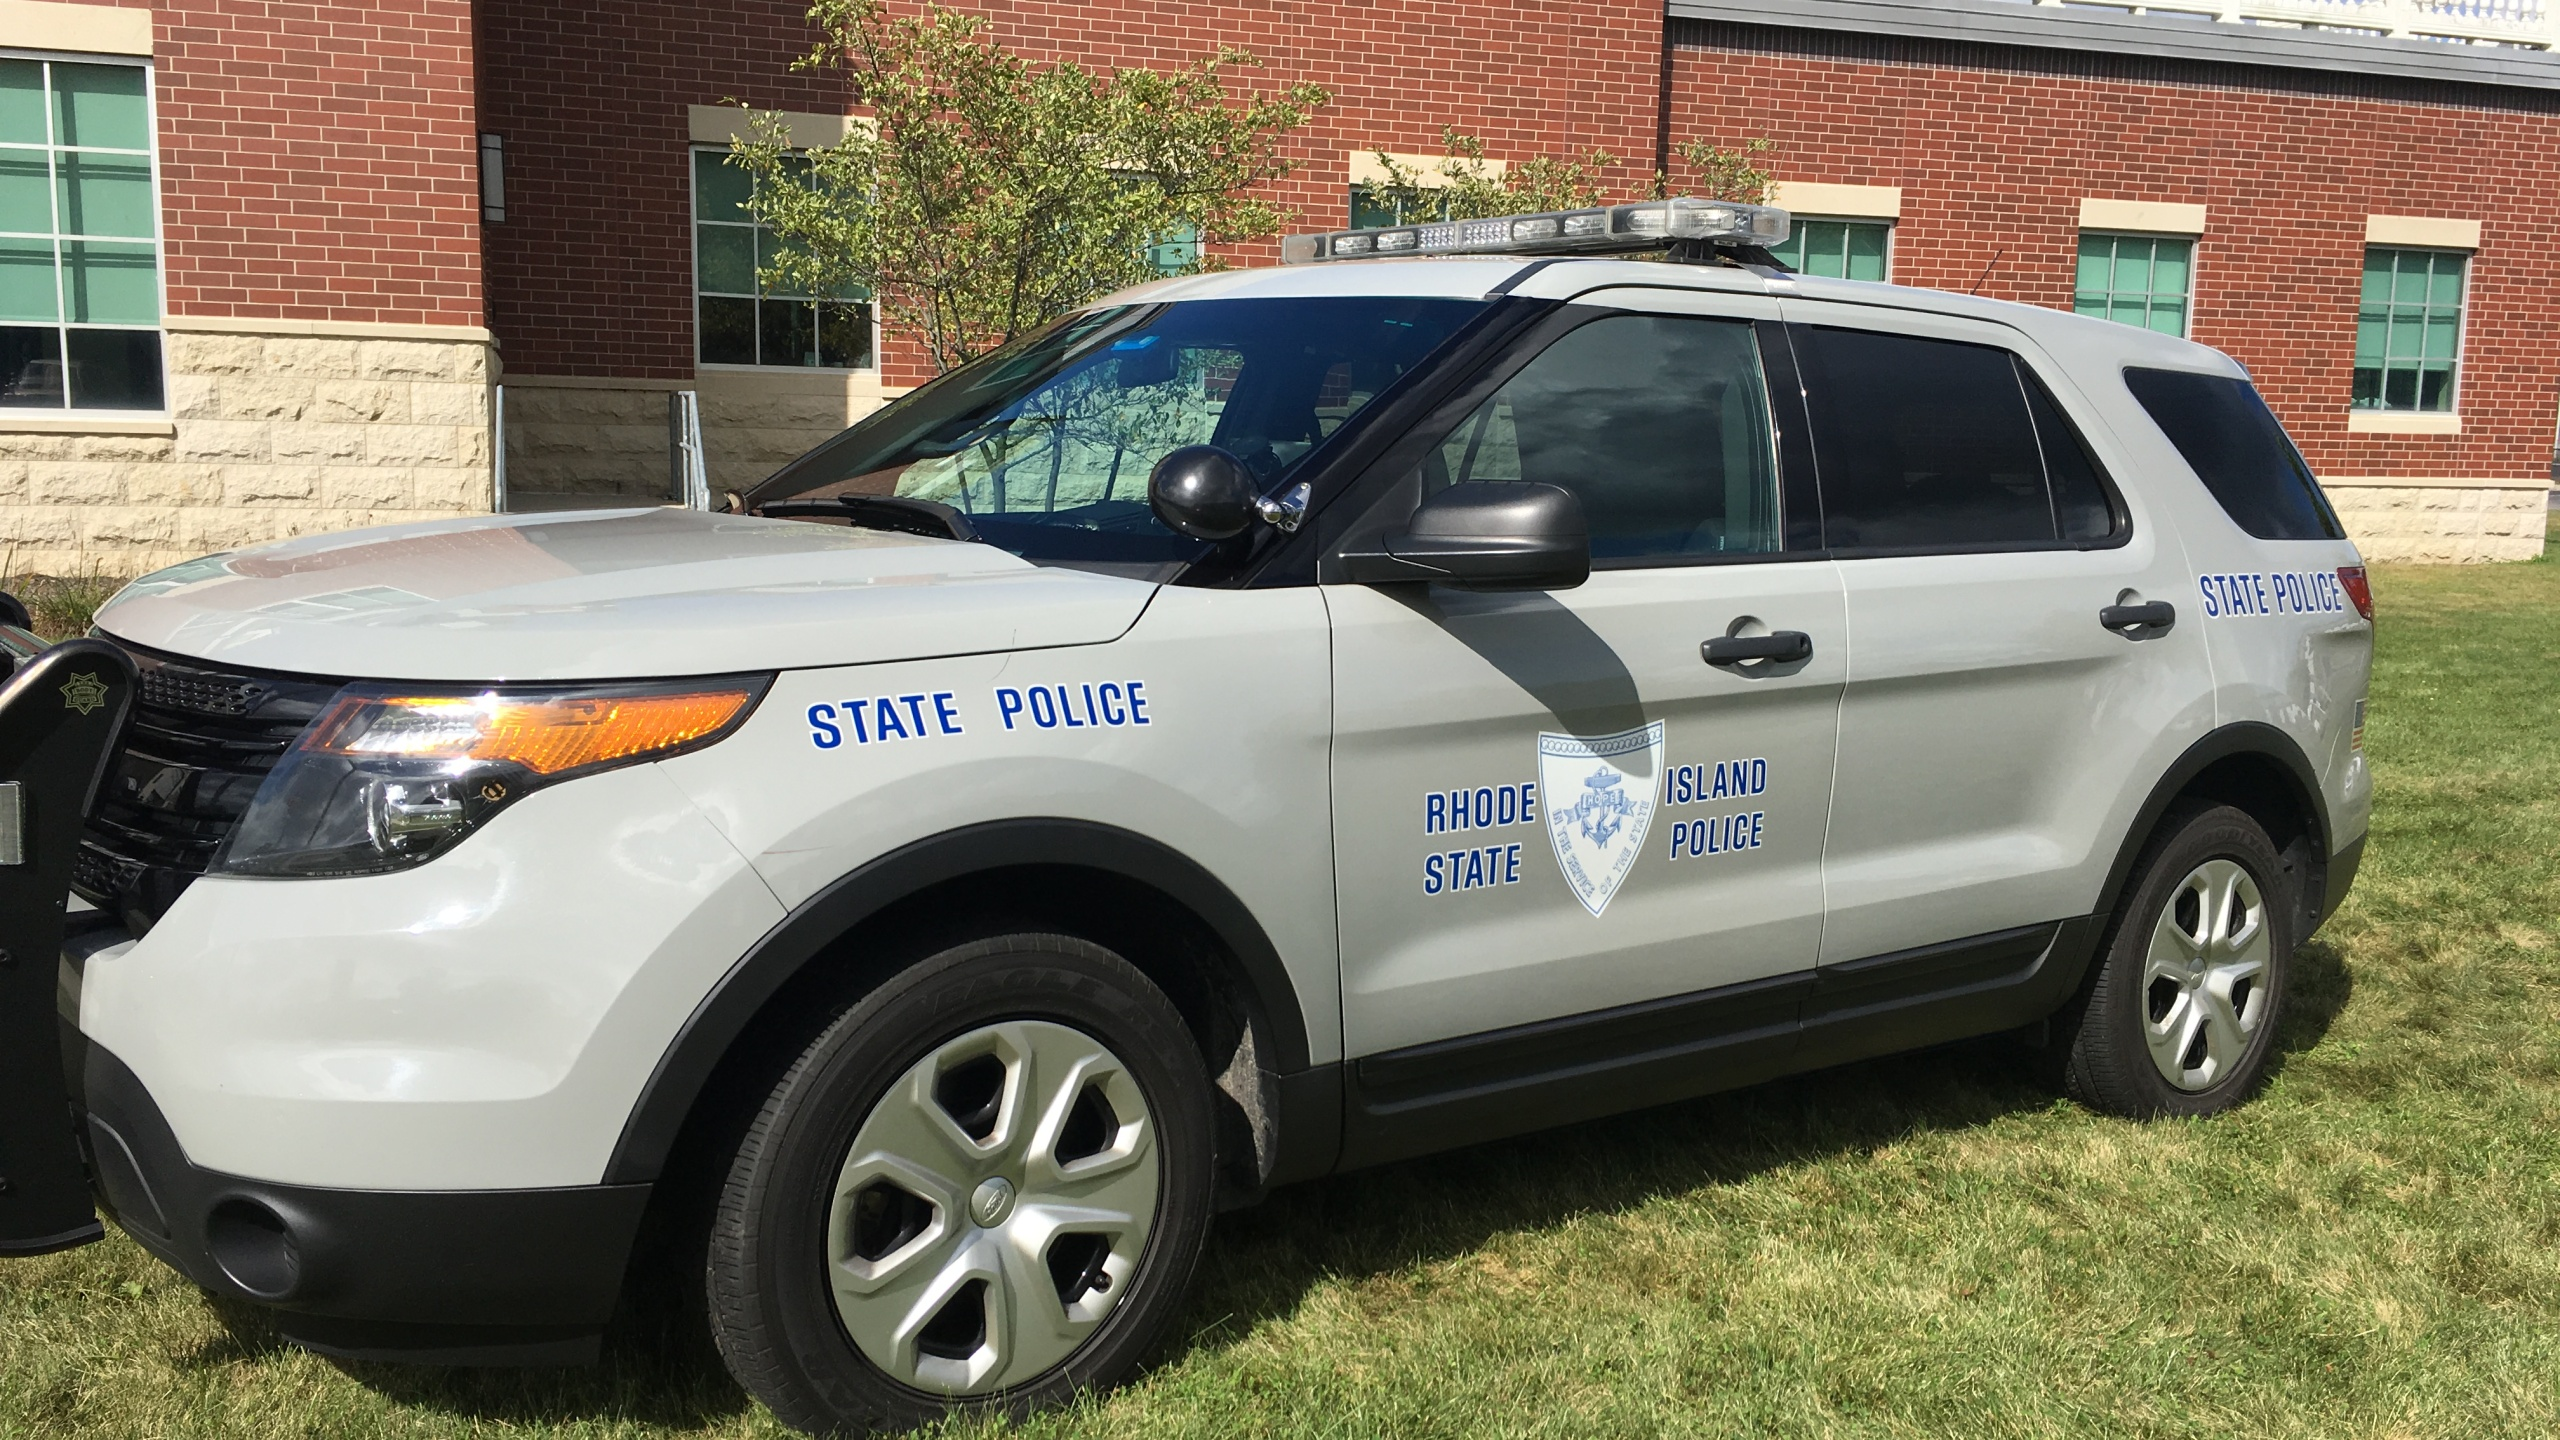 rhode island state police_560223